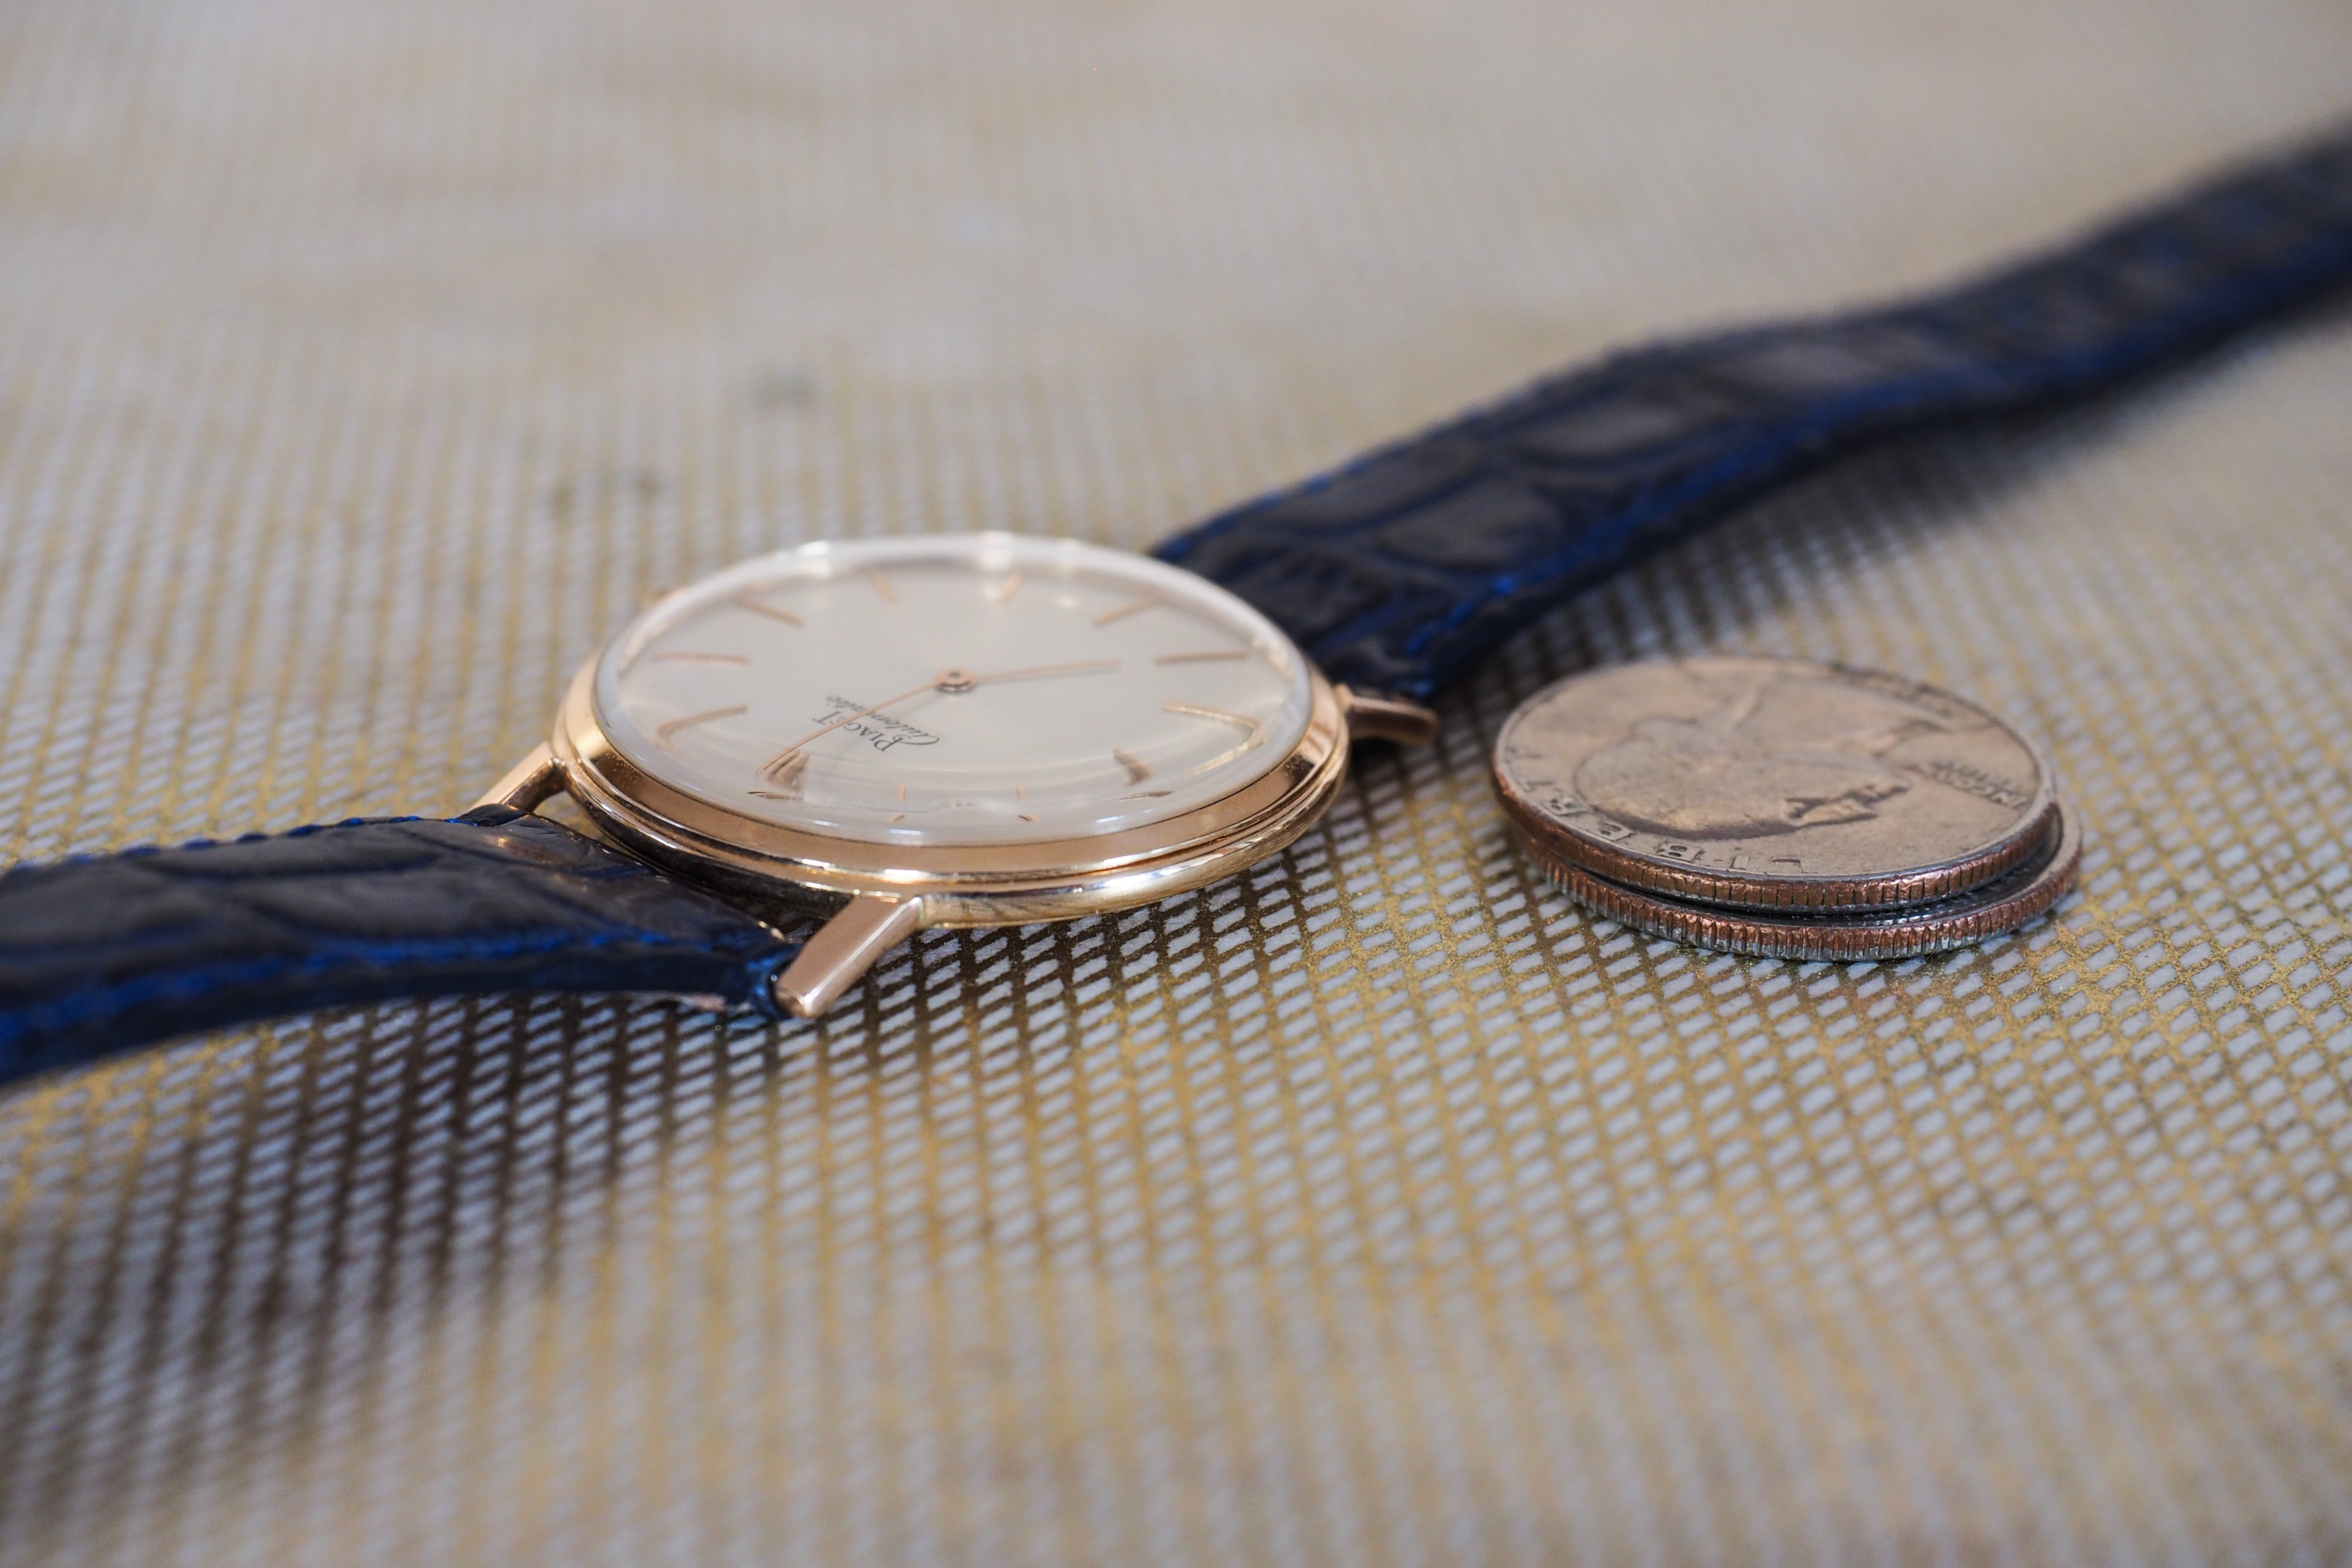 Introducing: The Piaget Altiplano 60th Anniversary Collection, With Automatic And Hand-Wound Editions Introducing: The Piaget Altiplano 60th Anniversary Collection, With Automatic And Hand-Wound Editions PC090844